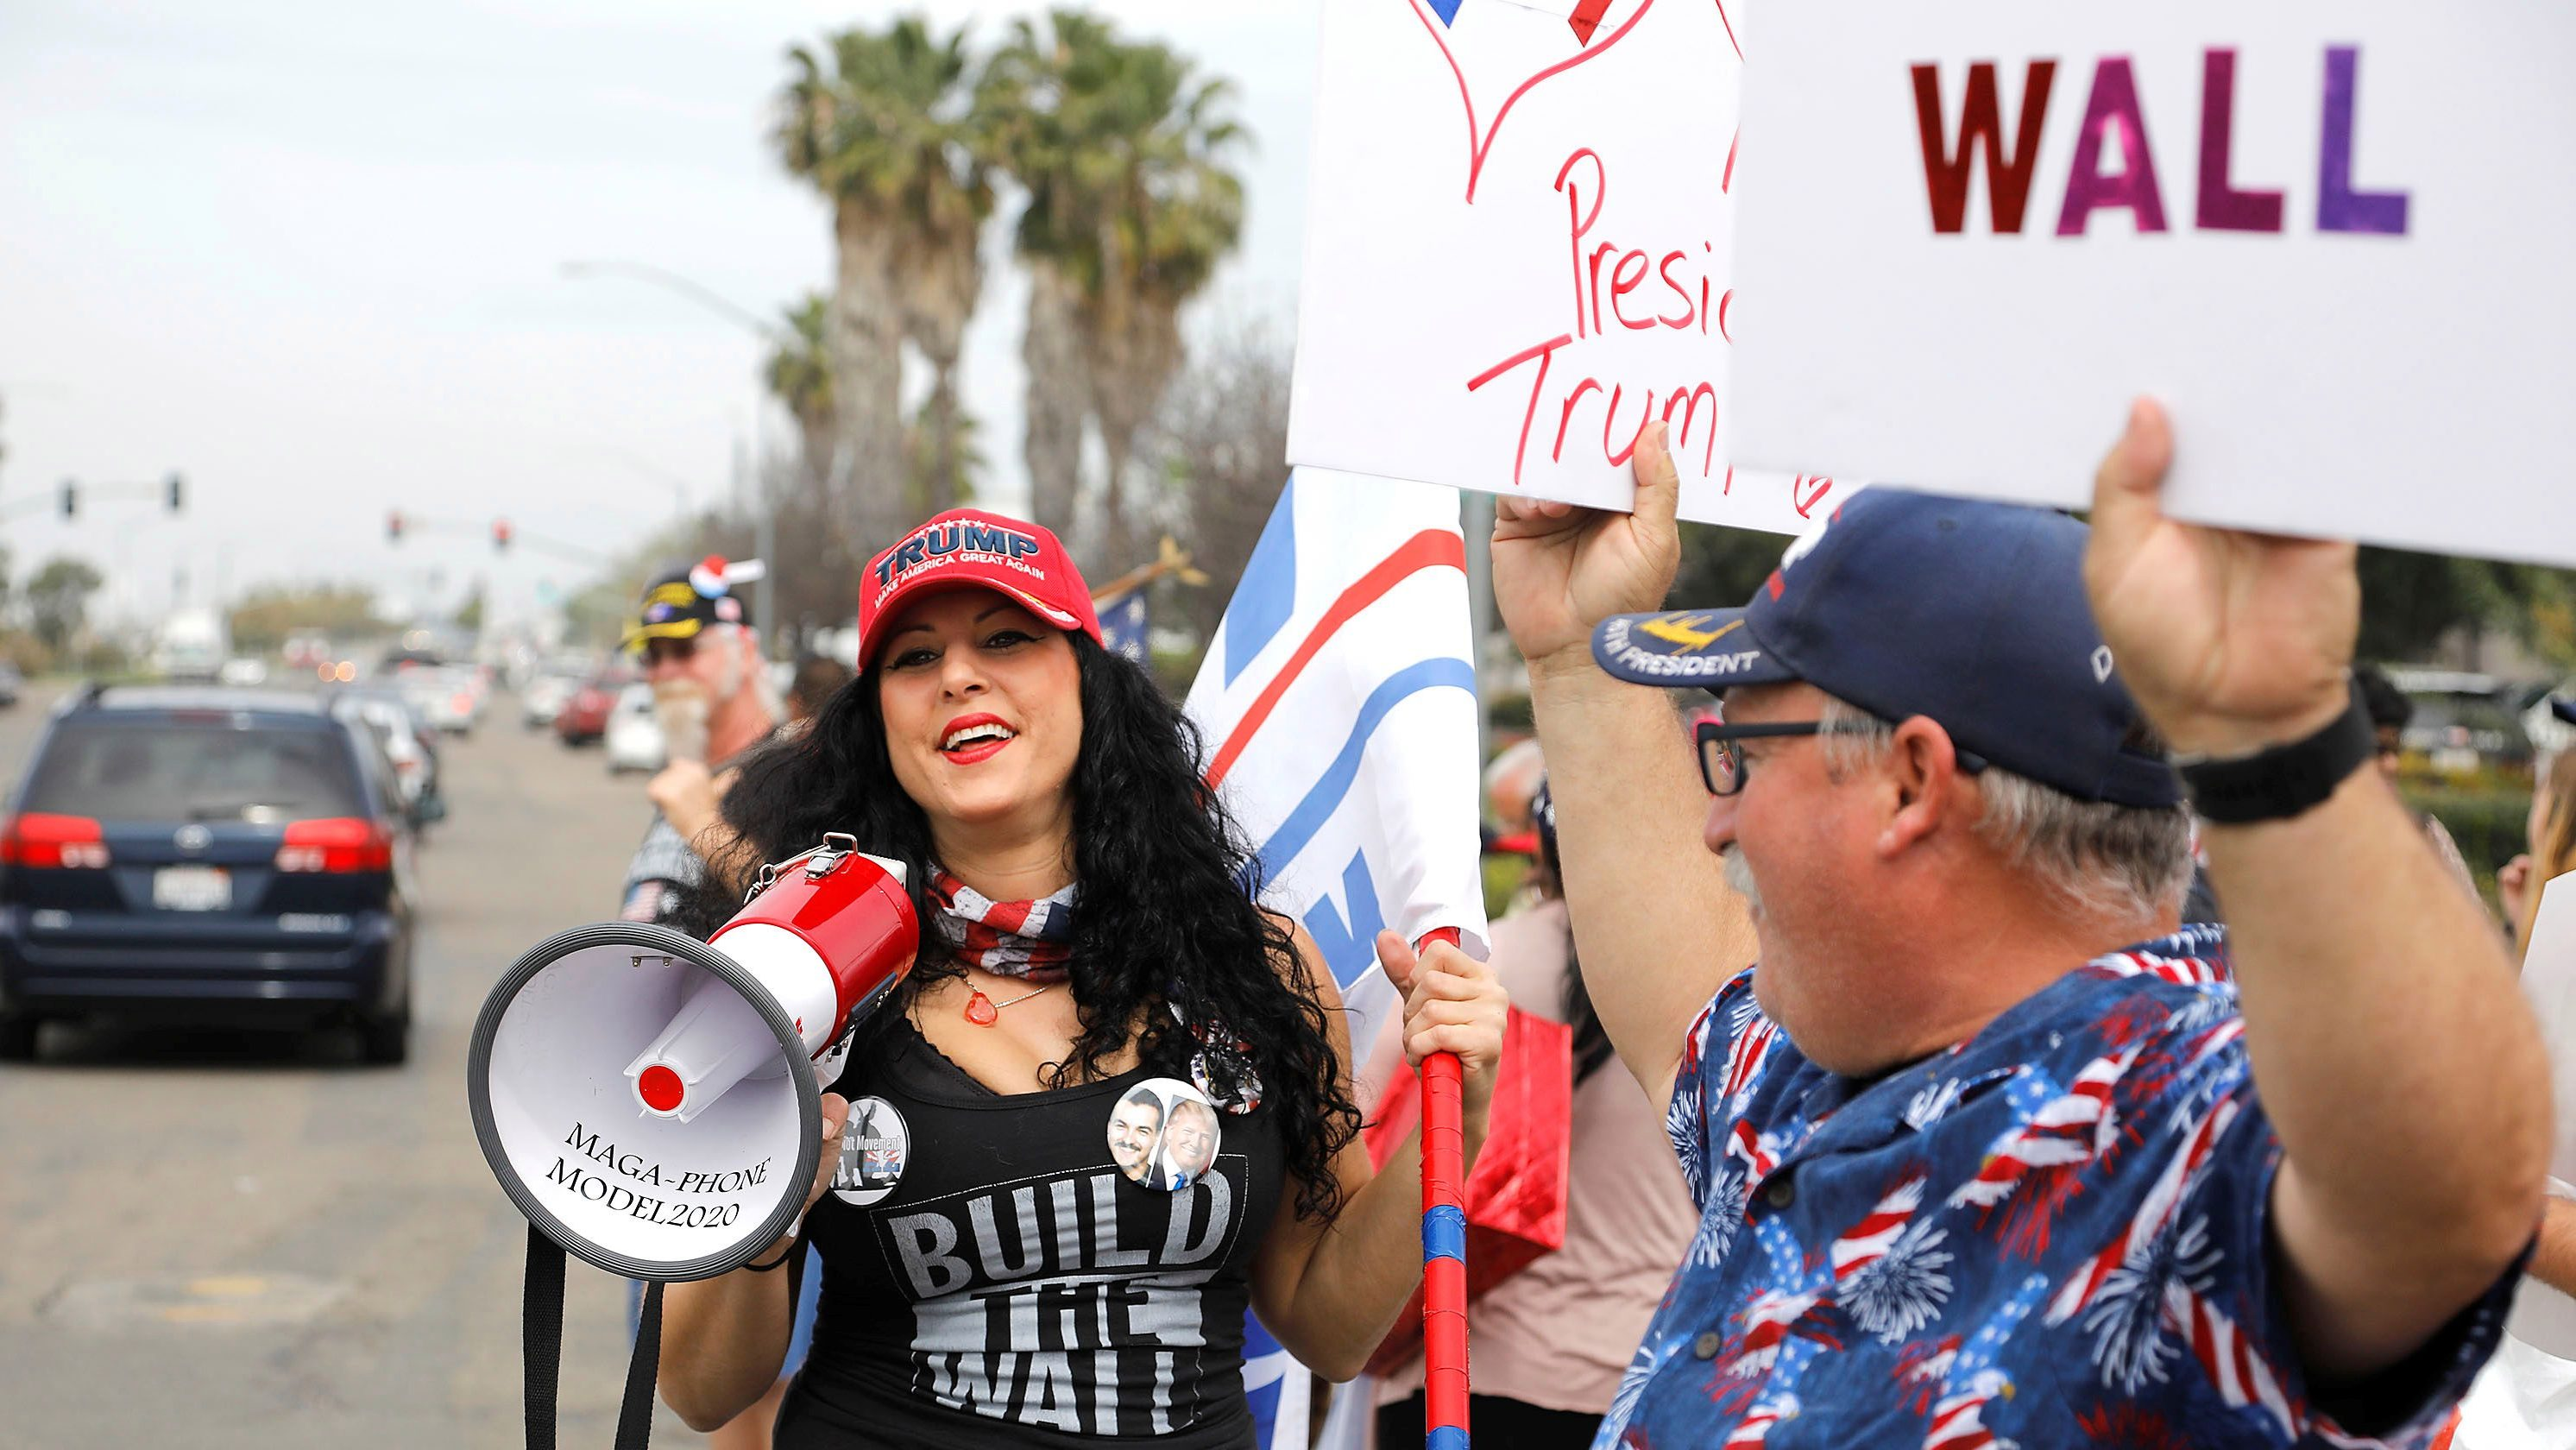 U.S. President Donald Trump's supporters rally near the US-Mexico border